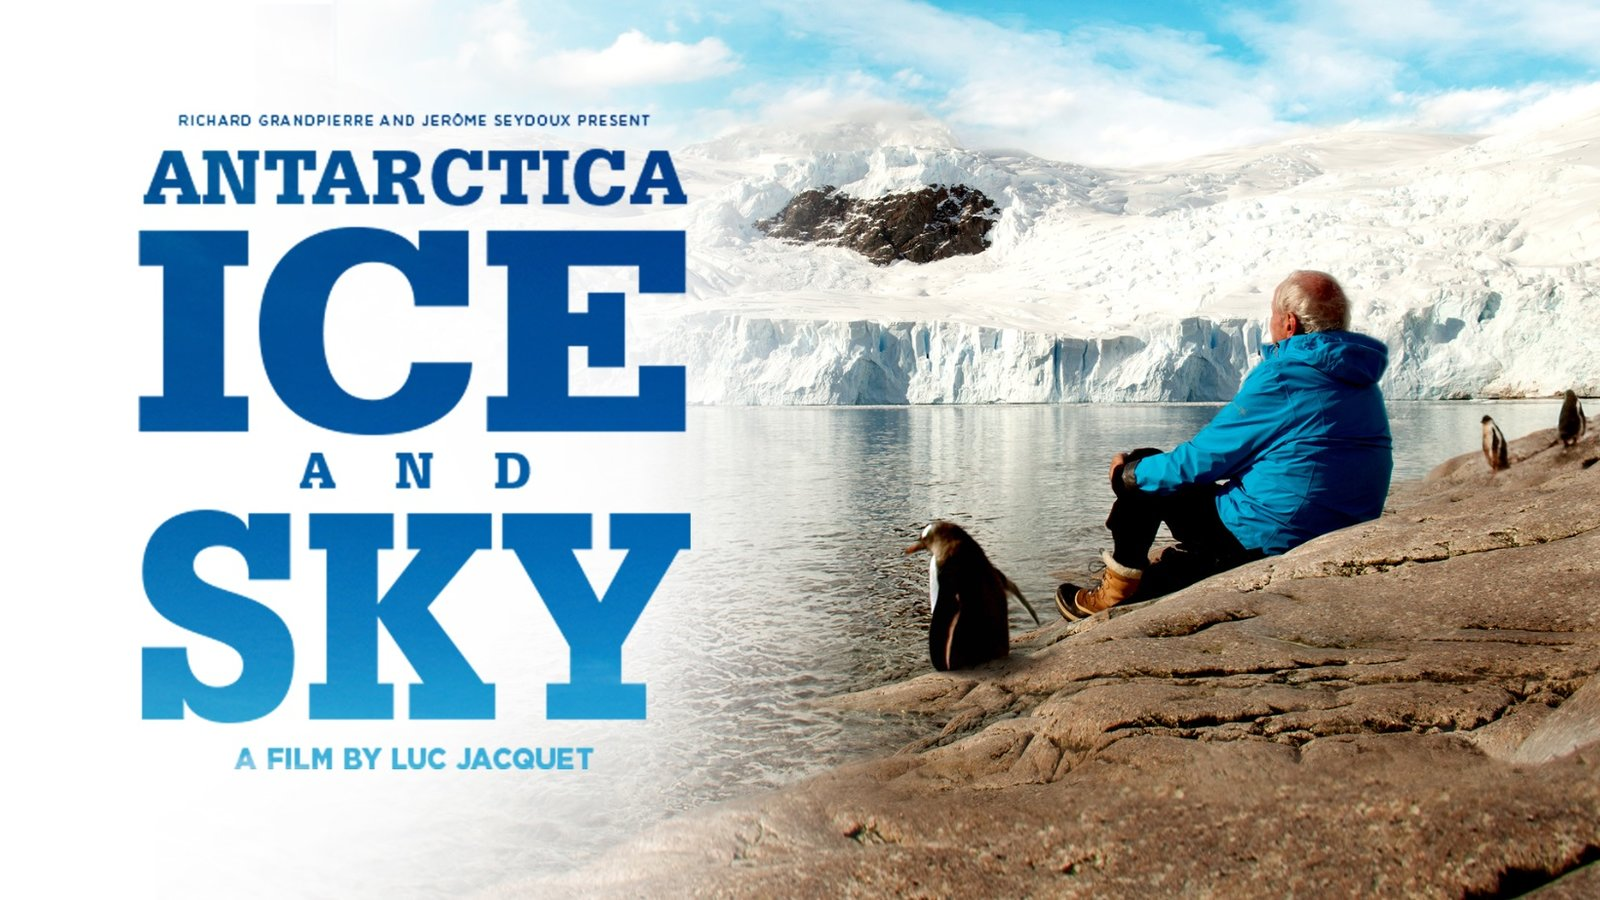 Antarctica: Ice & Sky - The Scientist Whose Research First Showed Evidence of Man-made Climate Change